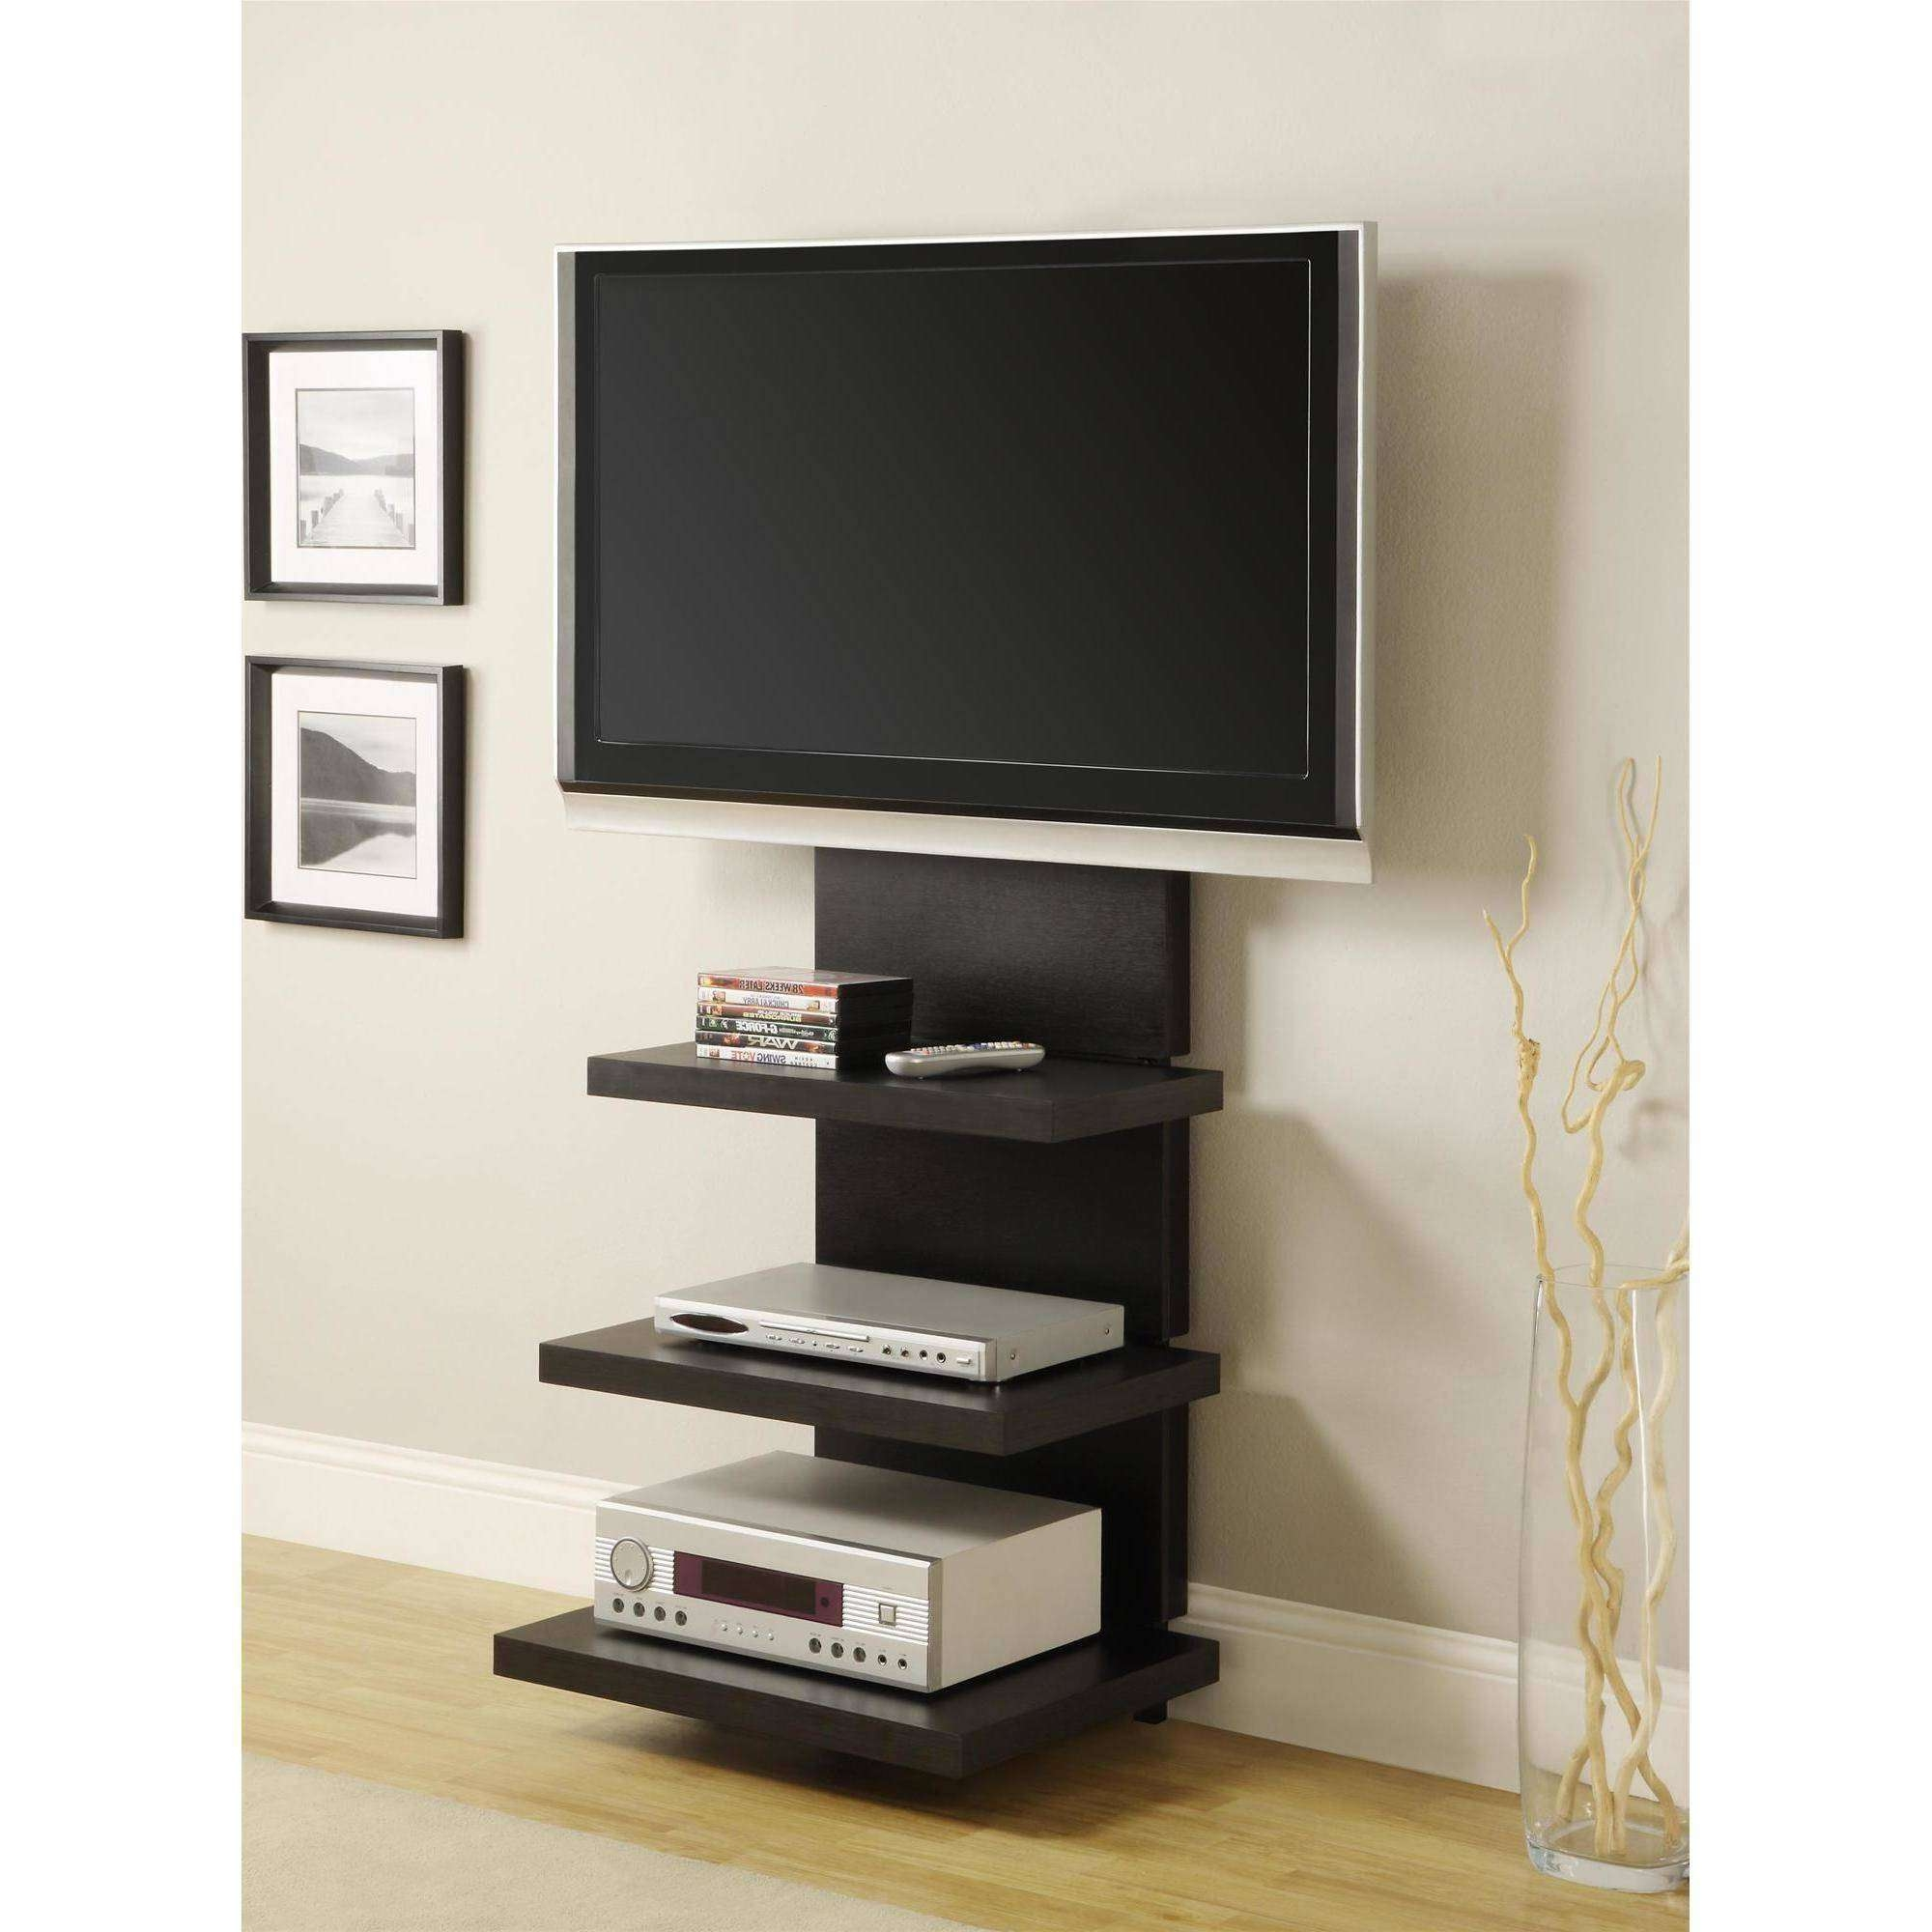 Decoration : Tv Stand For 60 Inch Tv Tv Wall Unit Swivel Tv Mount In Tall Tv Cabinets Corner Unit (View 4 of 20)